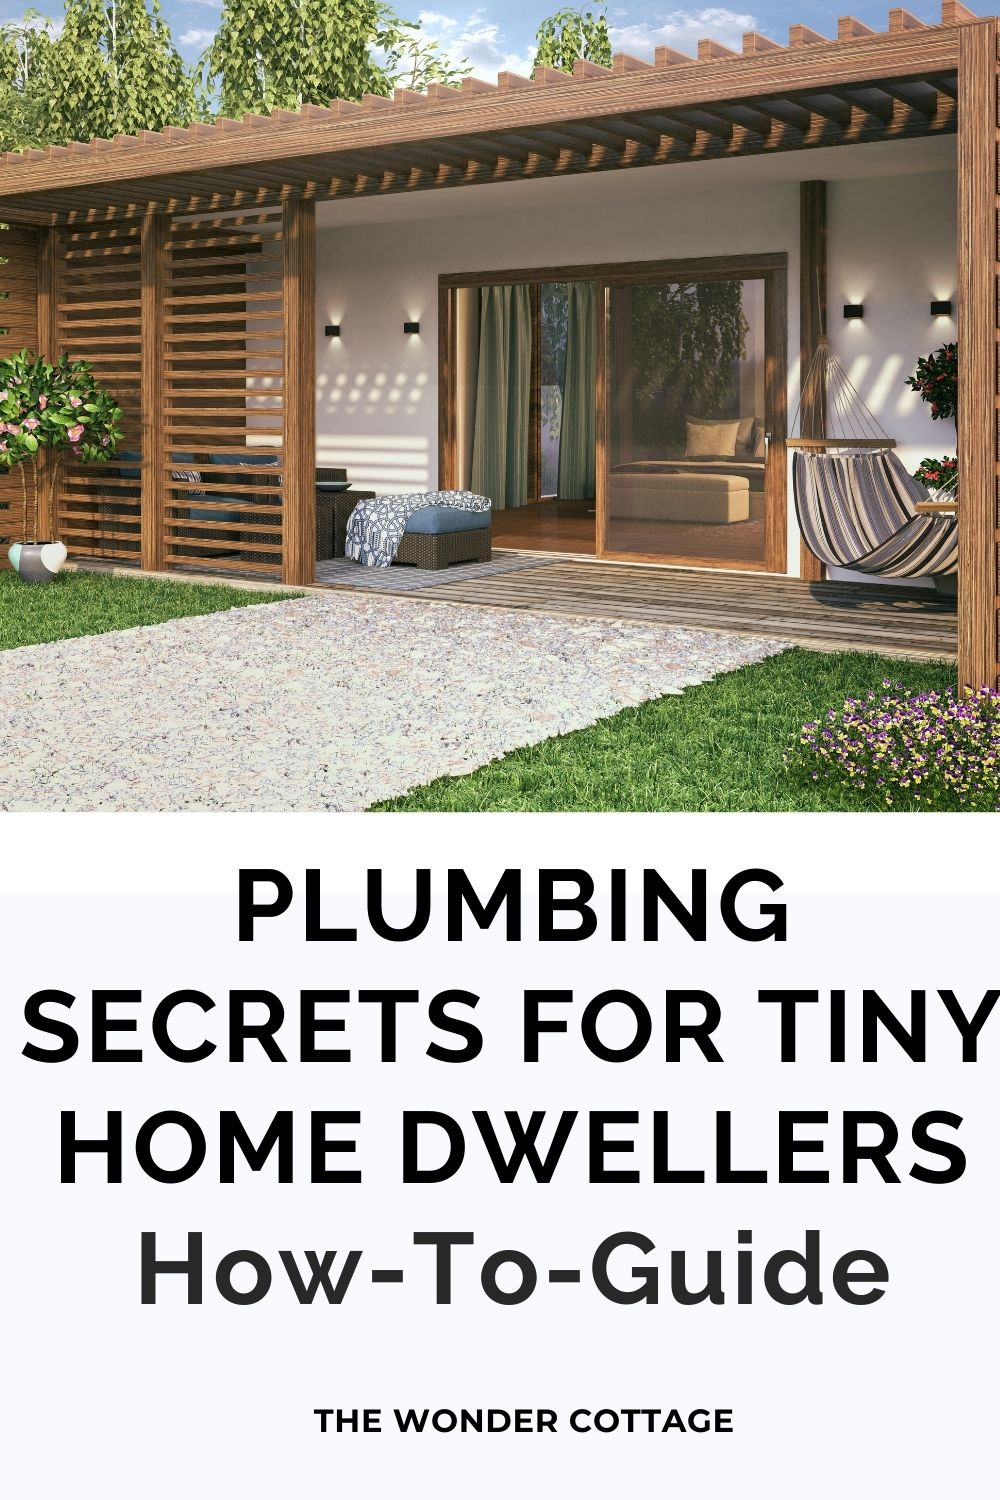 Plumbing Secrets For Tiny Home Dwellers: How To Guide